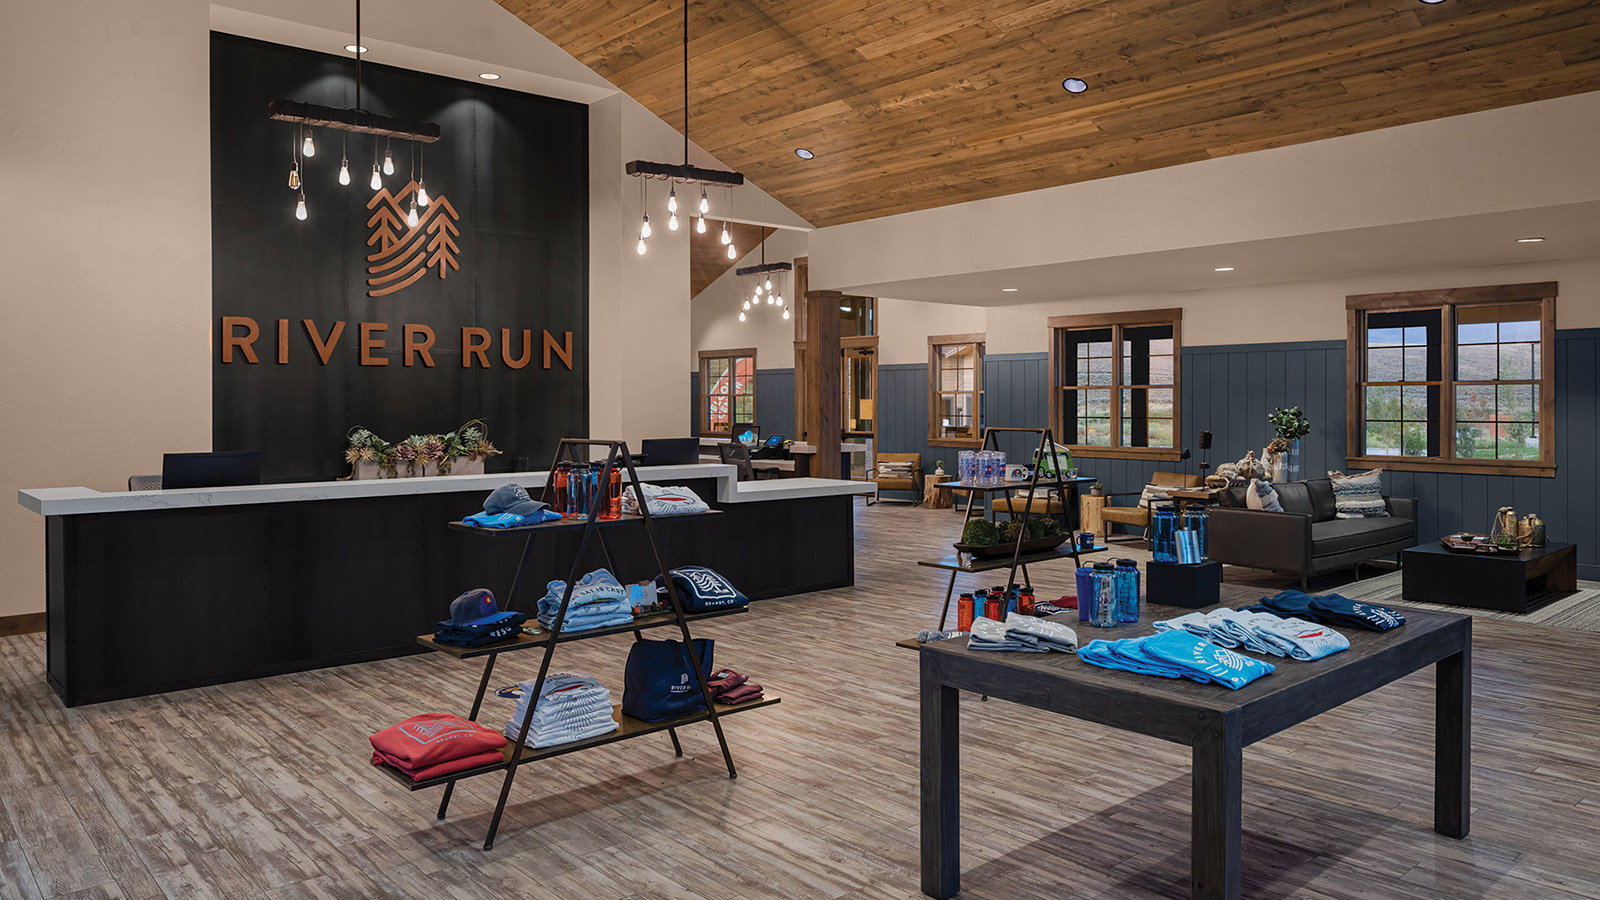 River Run Welcome Center Custom Metal Signage and Counters